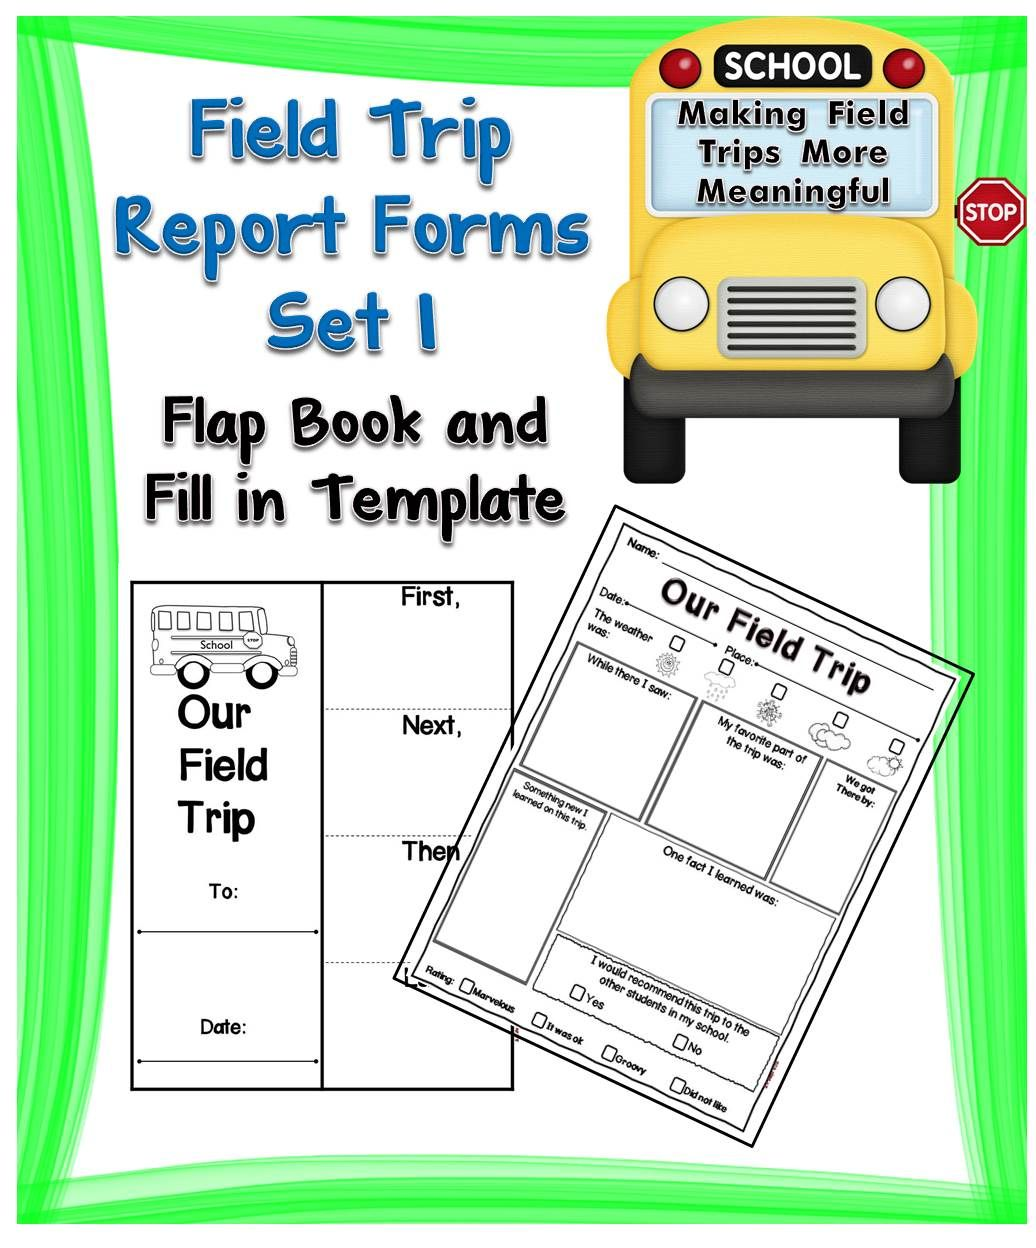 Field Trip Report Forms Set   Field Trips Fields And Students